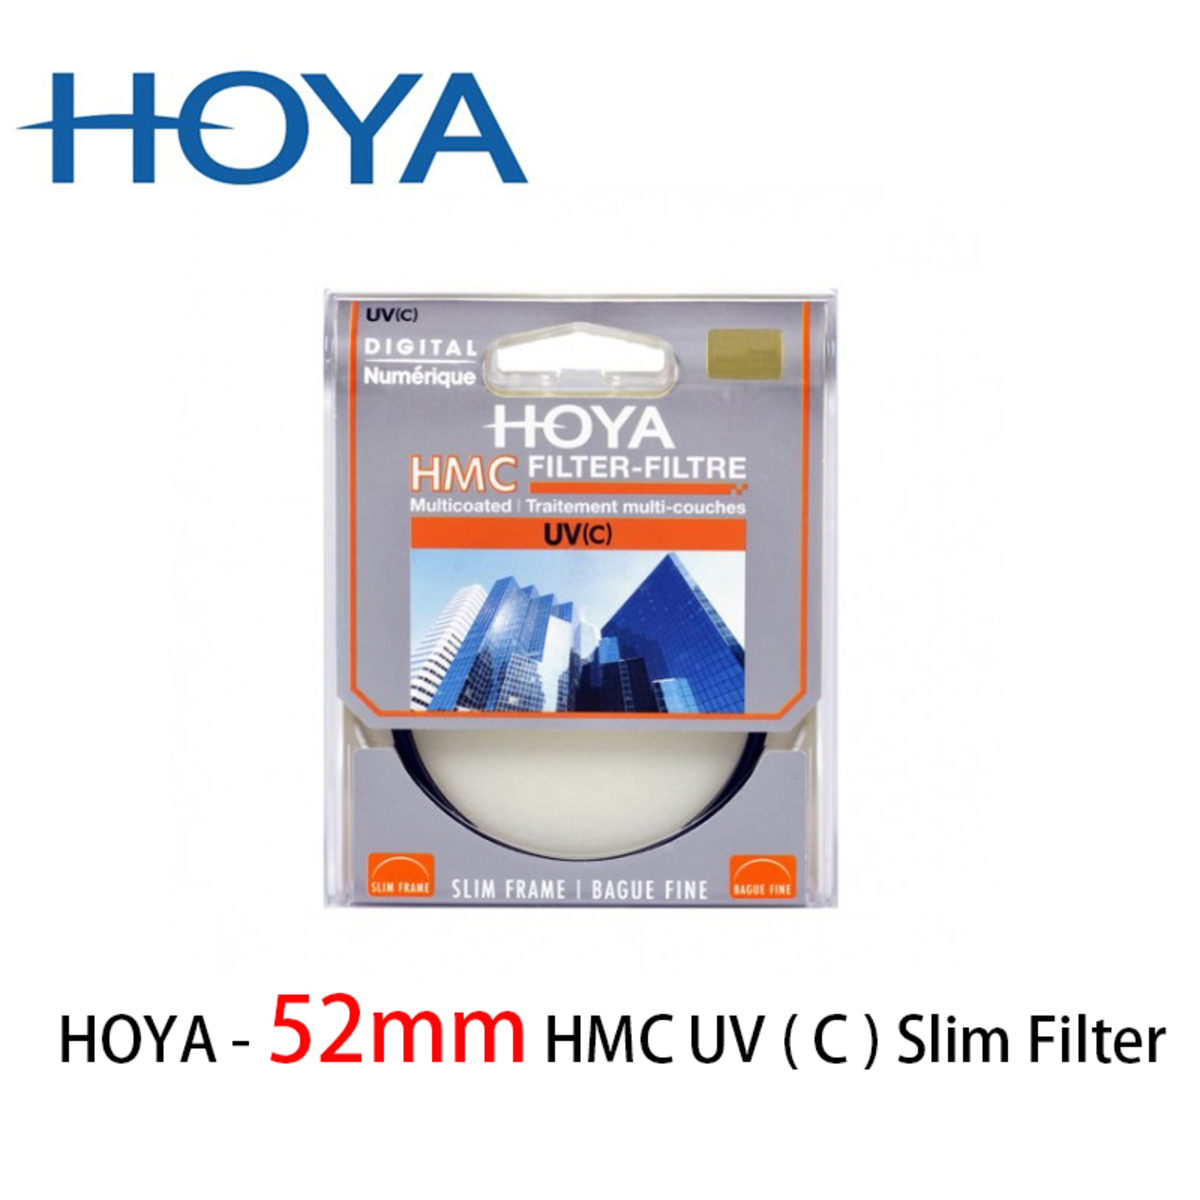 52mm HMC UV ( C ) Slim Filter 超薄 多層鍍膜  UV 抗紫外線濾鏡保護鏡